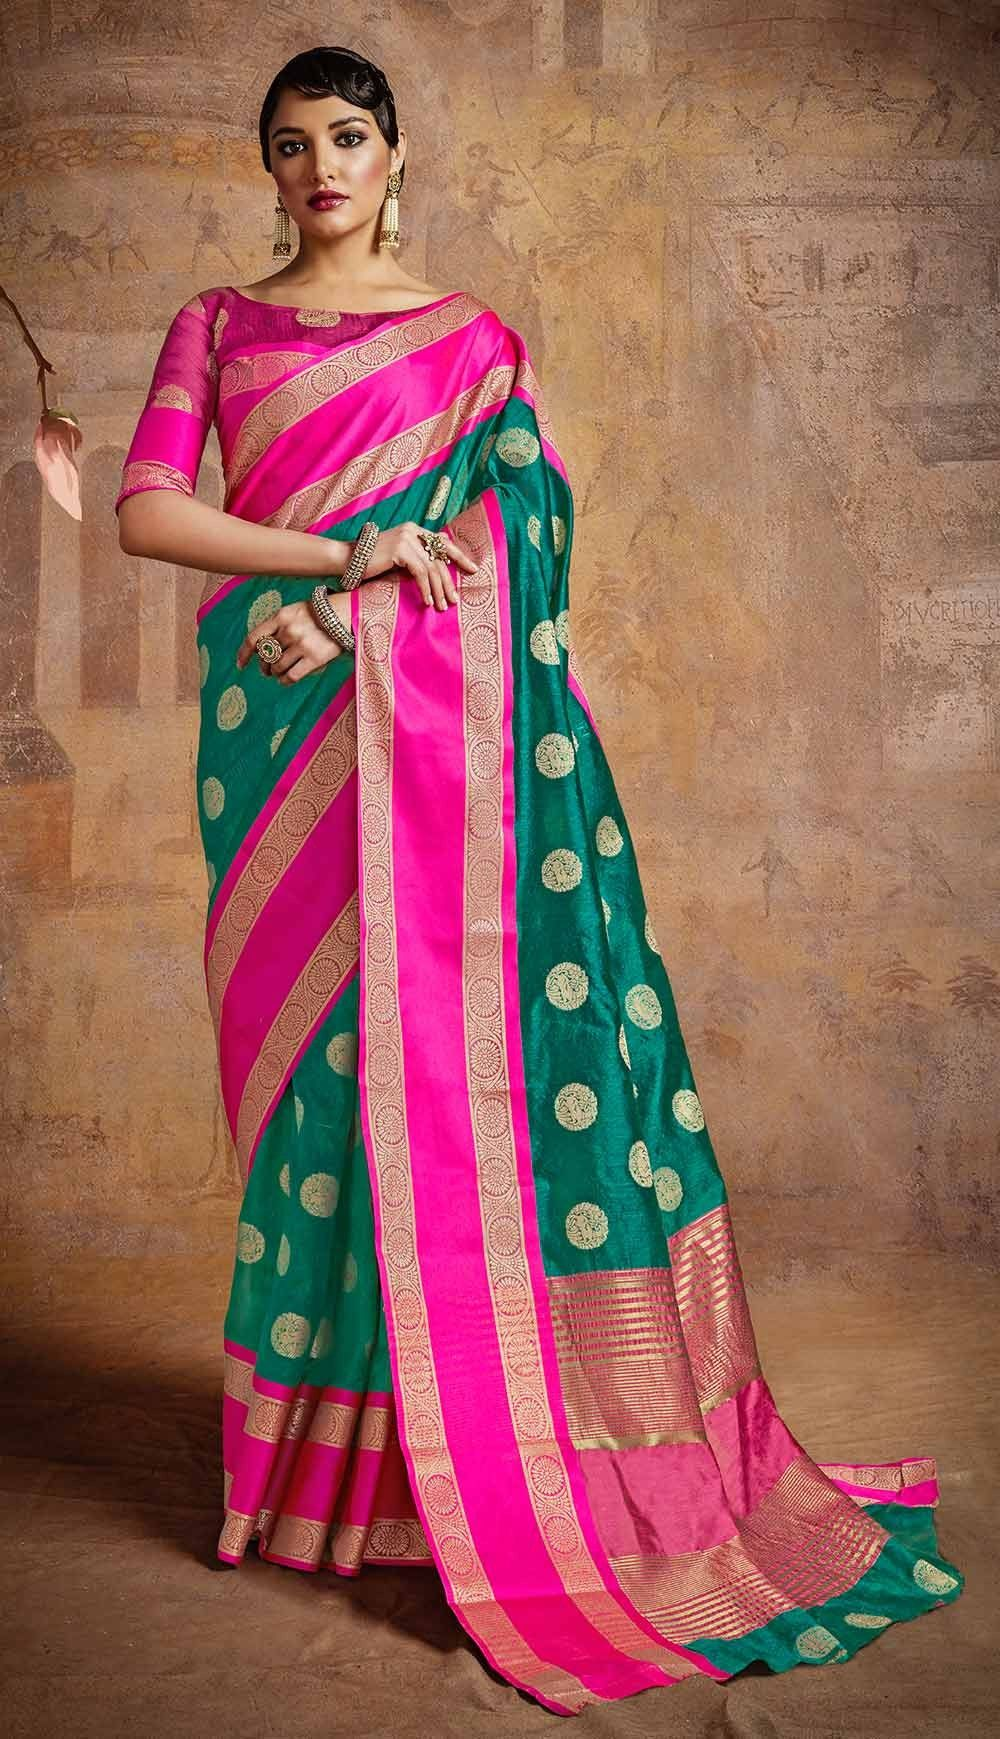 0032f25875 Green Festival Wear Sarees, Silk Festival Wear Sarees, $40.60. Buy latest  Festival Wear Sarees with custom stitching and worldwide shipping.